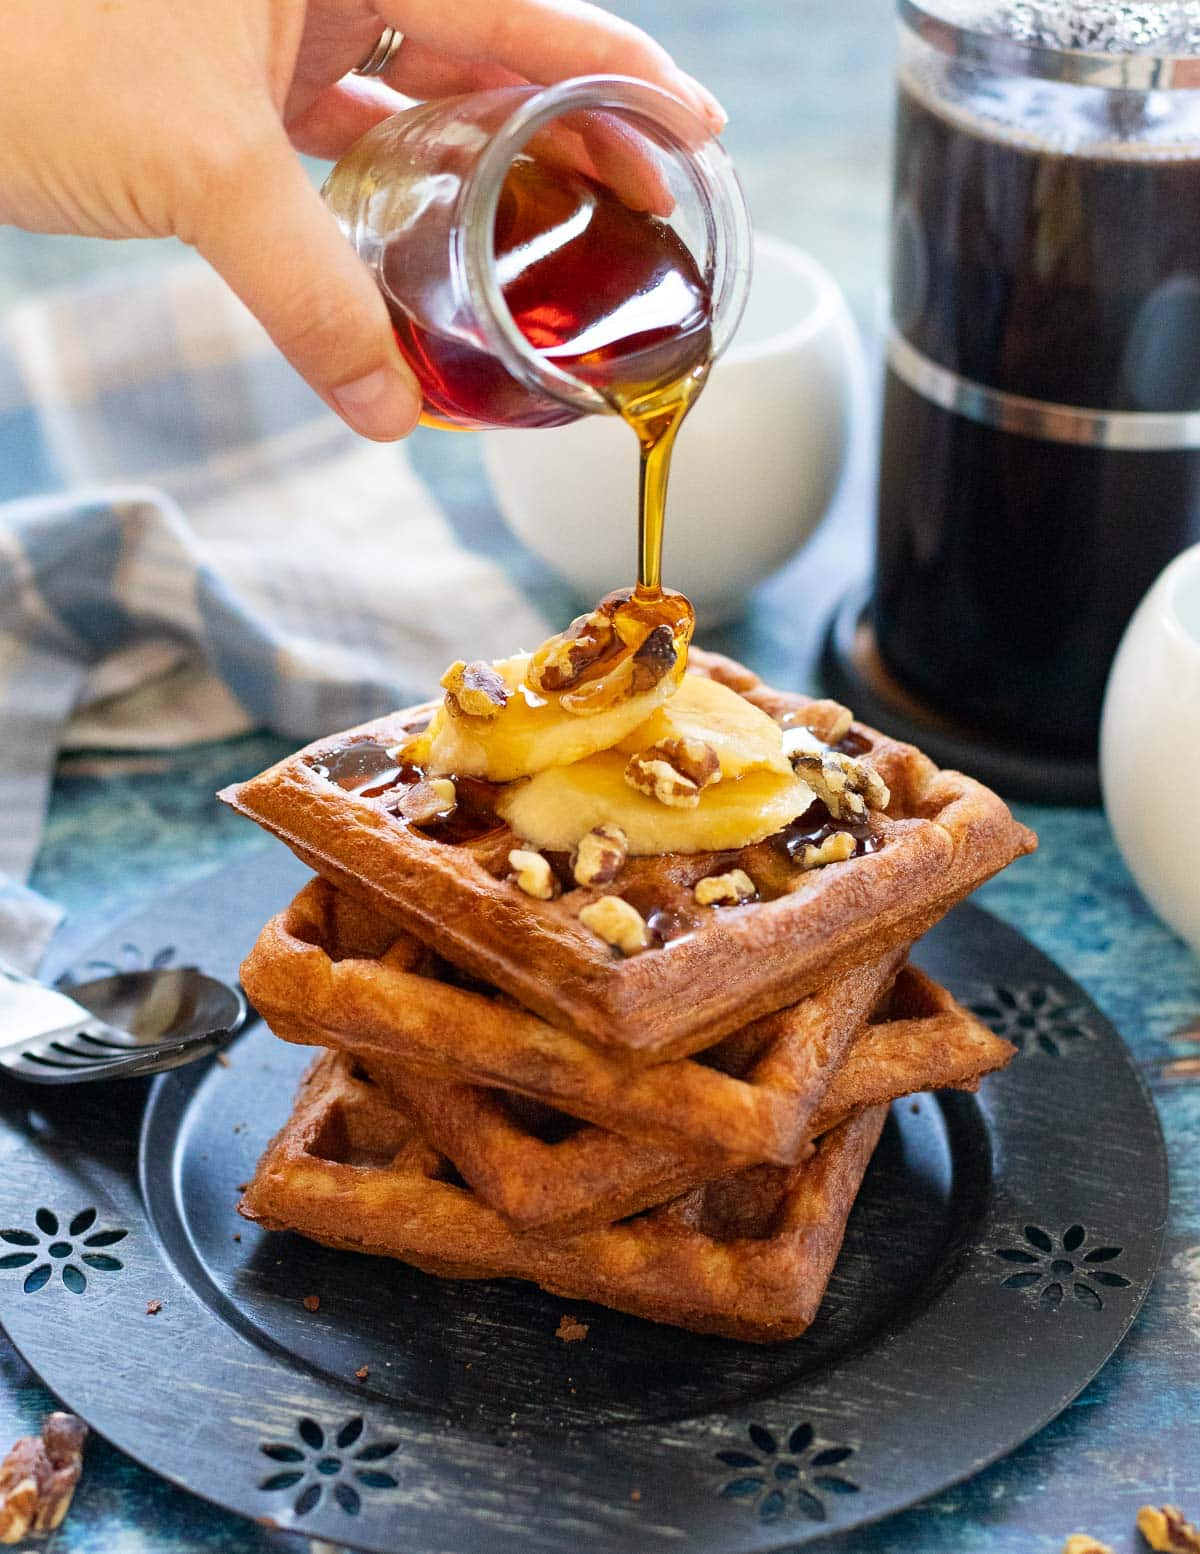 maple syrup pouring over a stack of vegan banana waffles